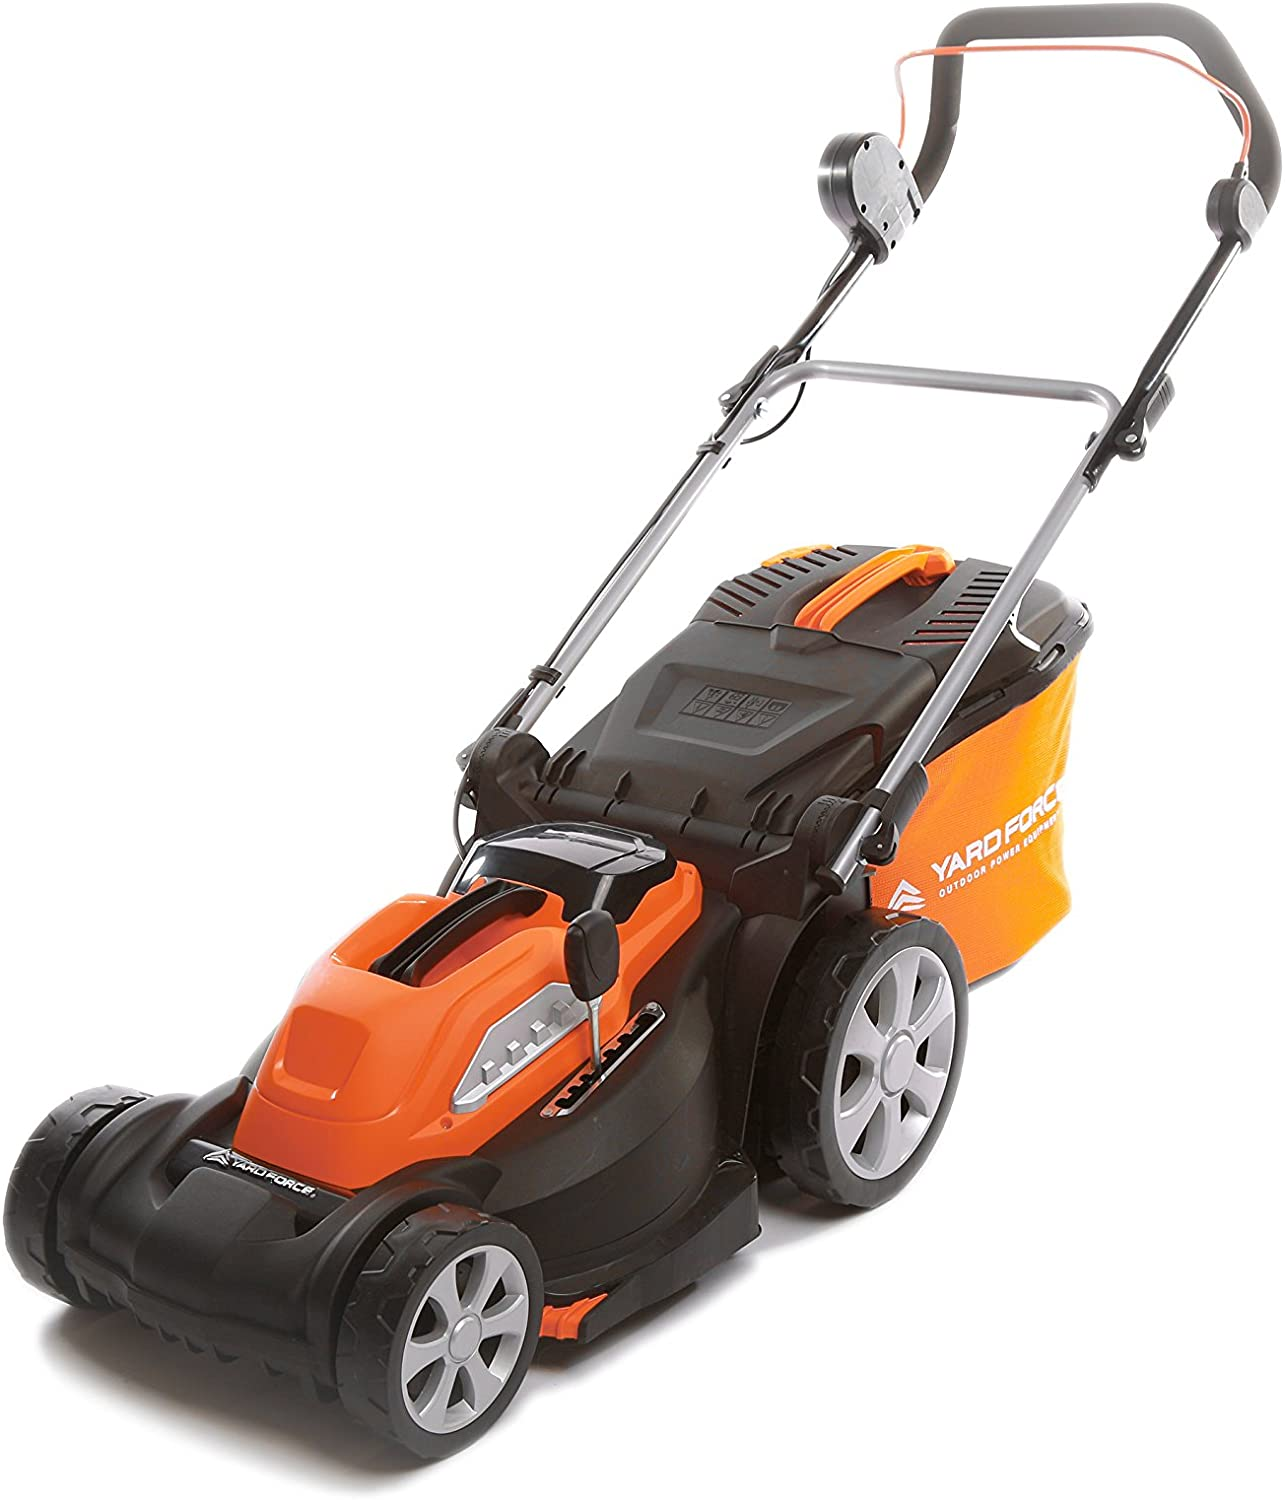 Yard Force Cordless Lawnmower